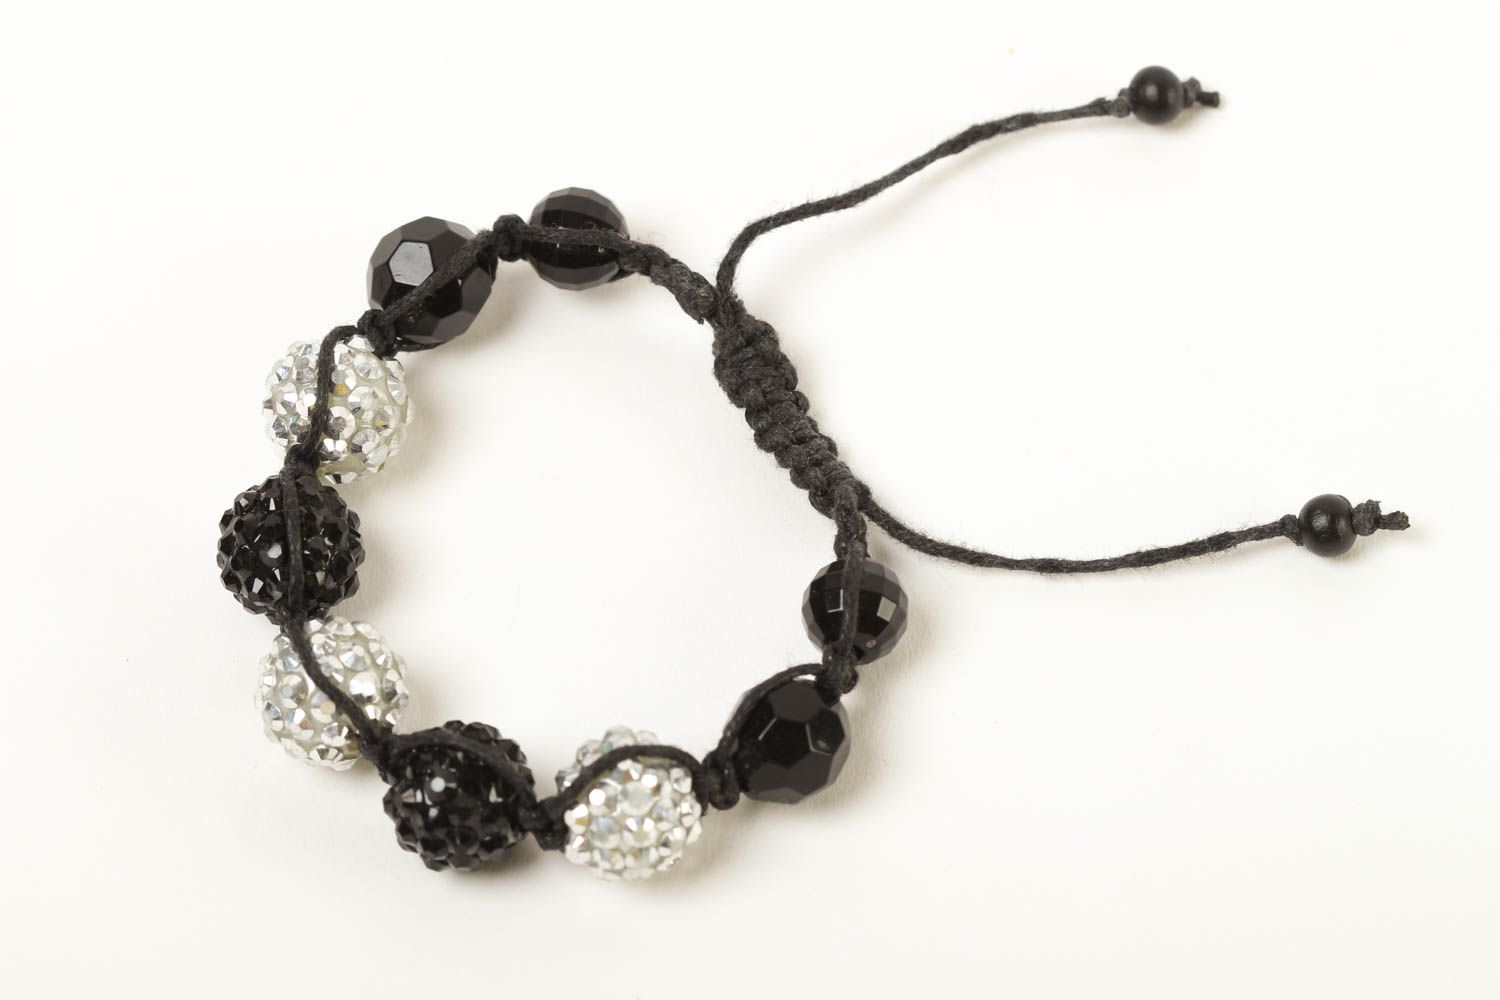 Stylish handmade beaded bracelet woven cord bracelet with beads small gifts photo 1